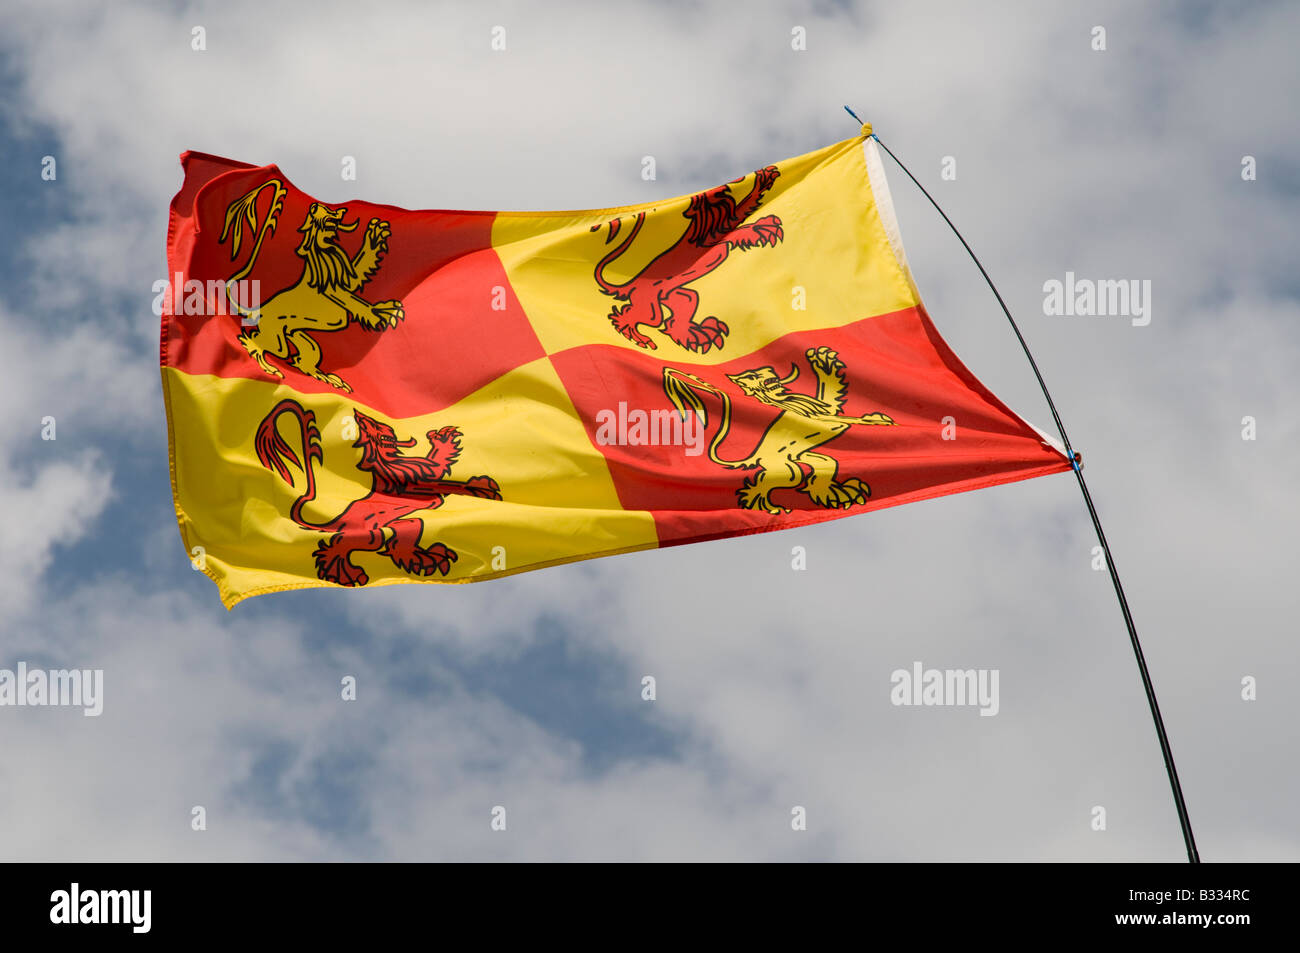 Old welsh flag emblem of Owain Glyndwr flying at National Eisteddfod of Wales Cardiff August 2008 - Stock Image